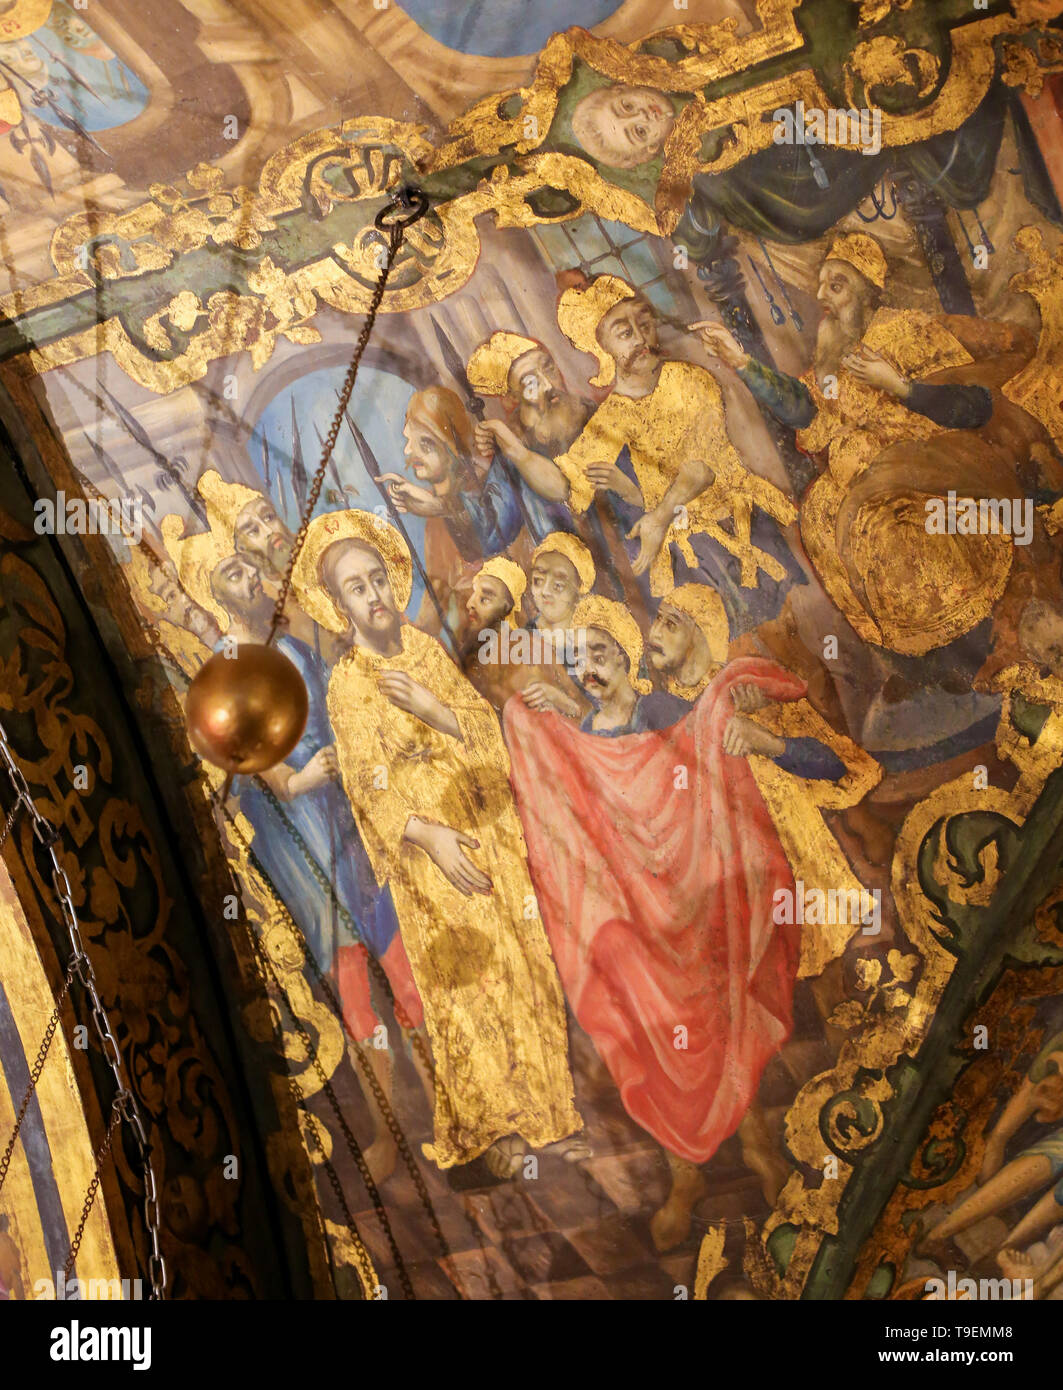 Greek Orthodox Fresco in the Church of the Holy Sepulchre in Jerusalem, depicting the Sanhedrin Trial of Jesus on Good Friday - Stock Image